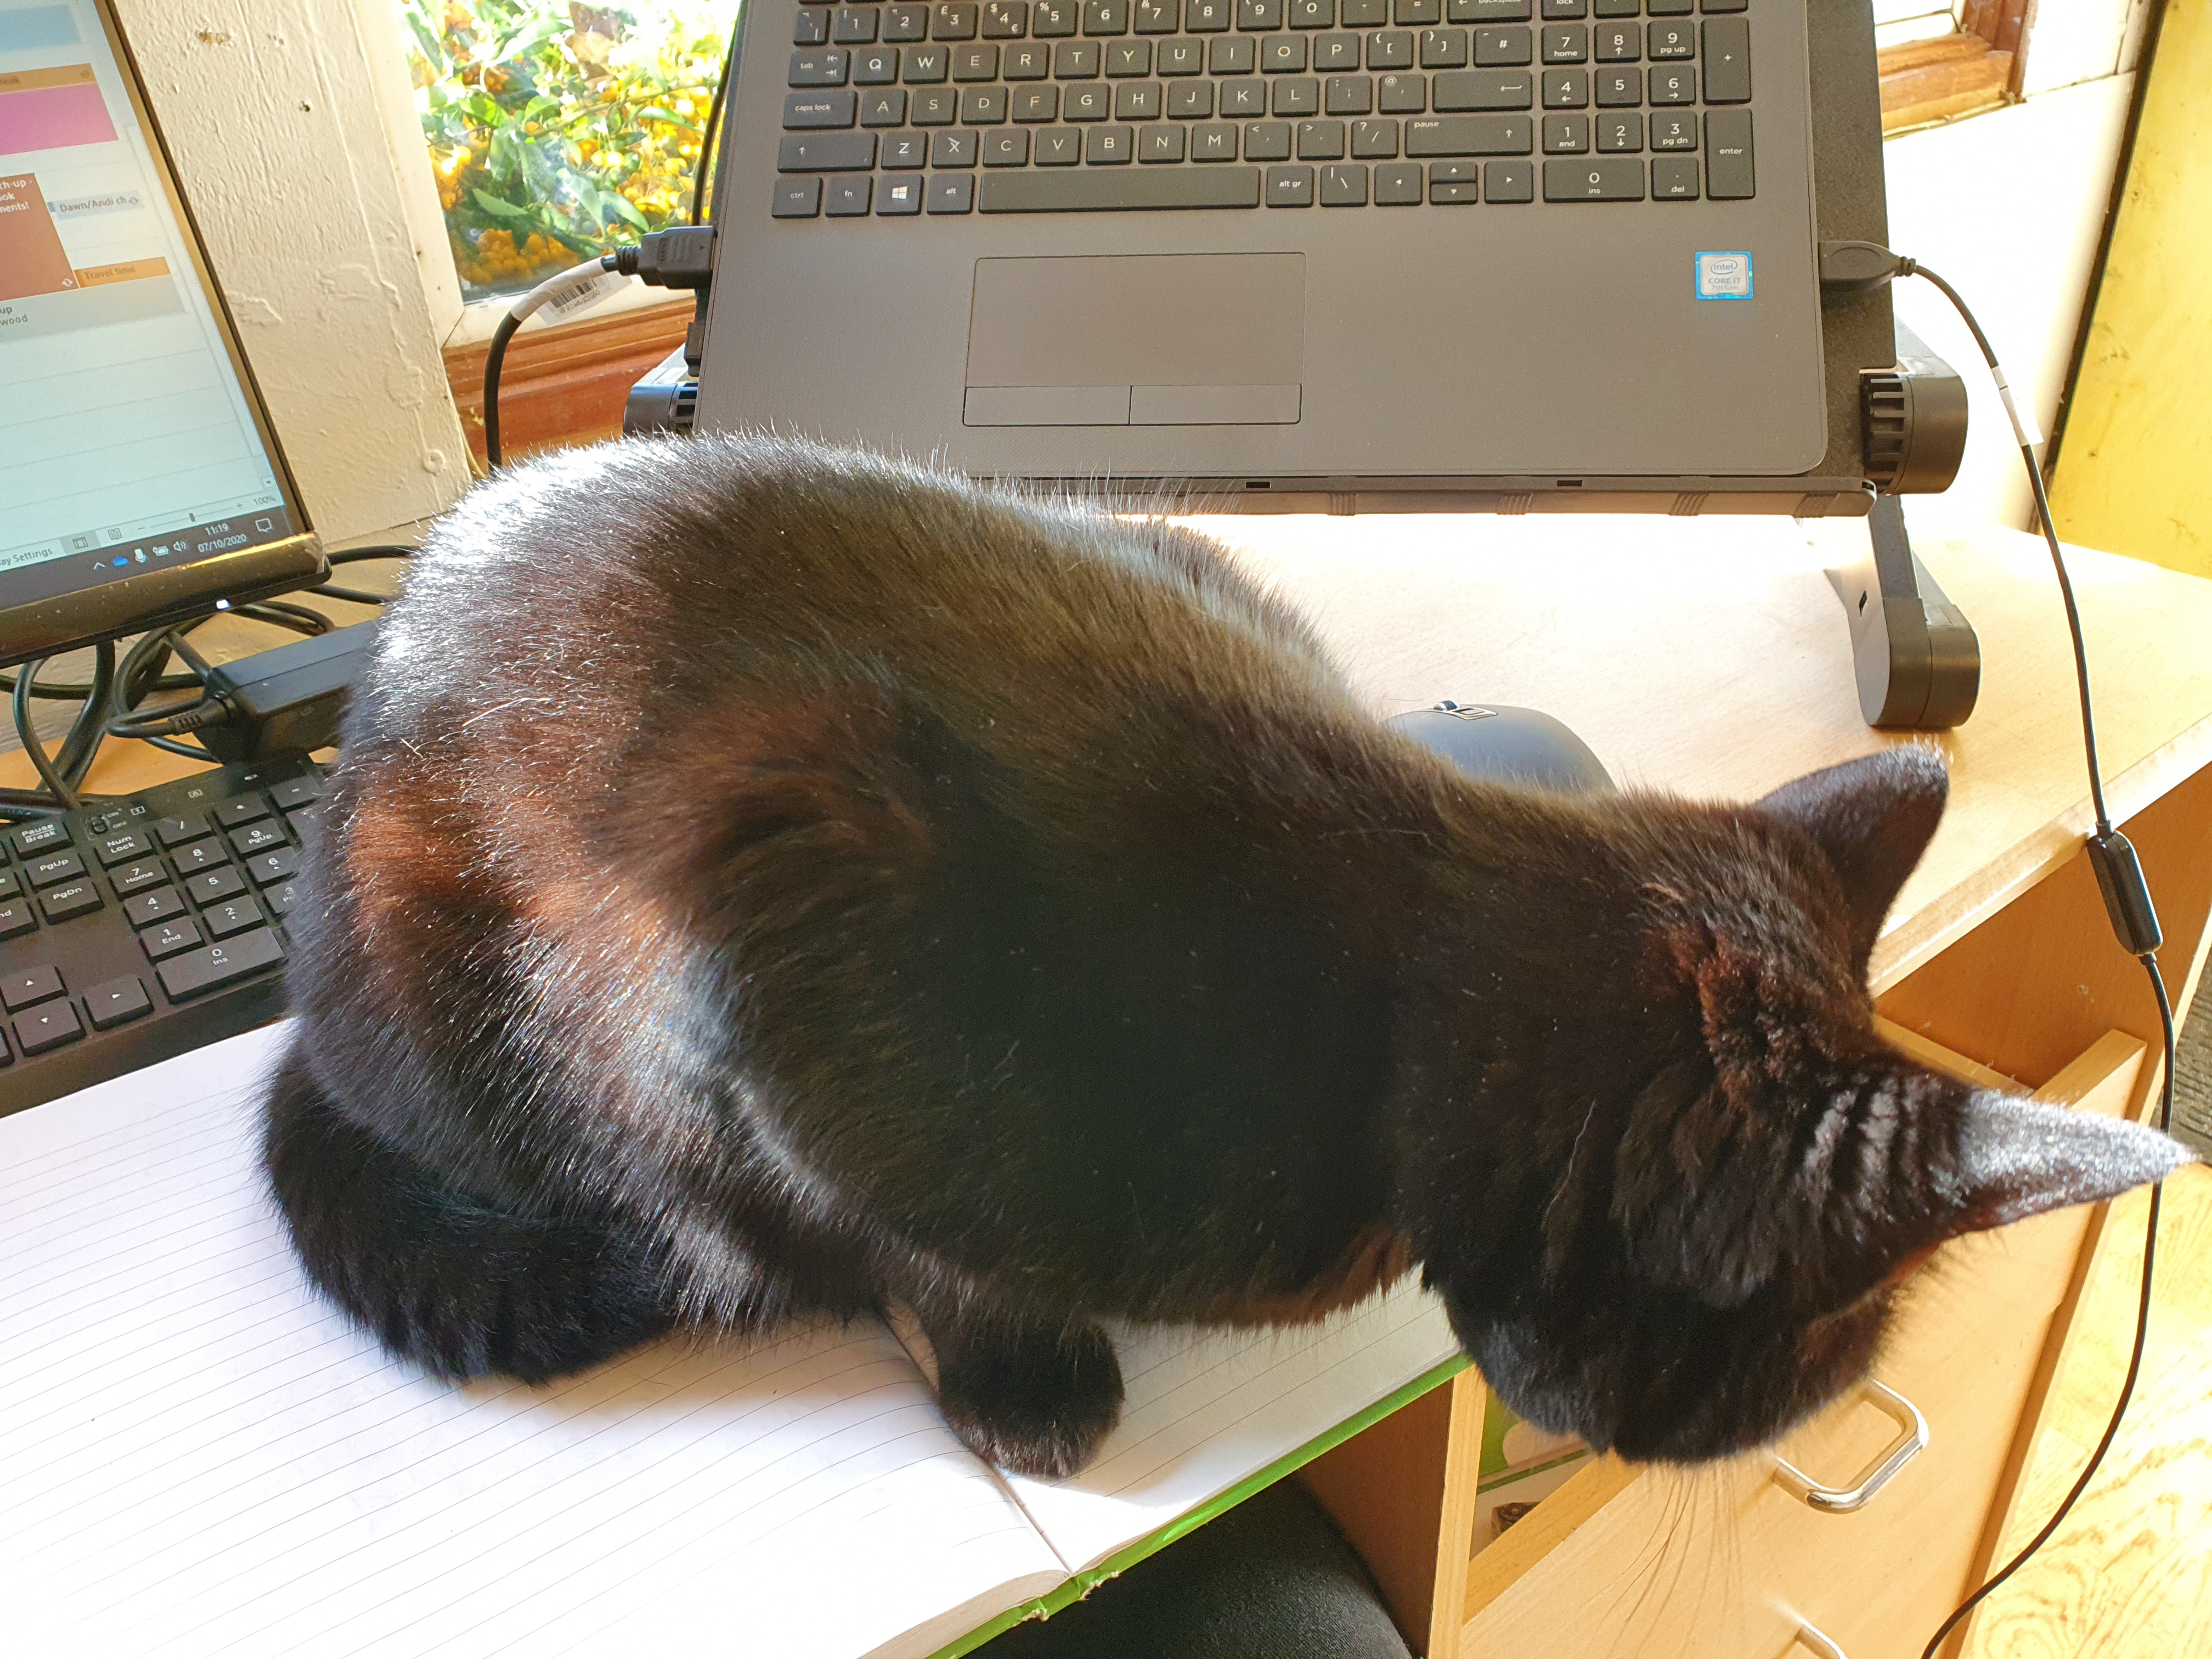 Black cat sat on notebook in front of laptop preventing work